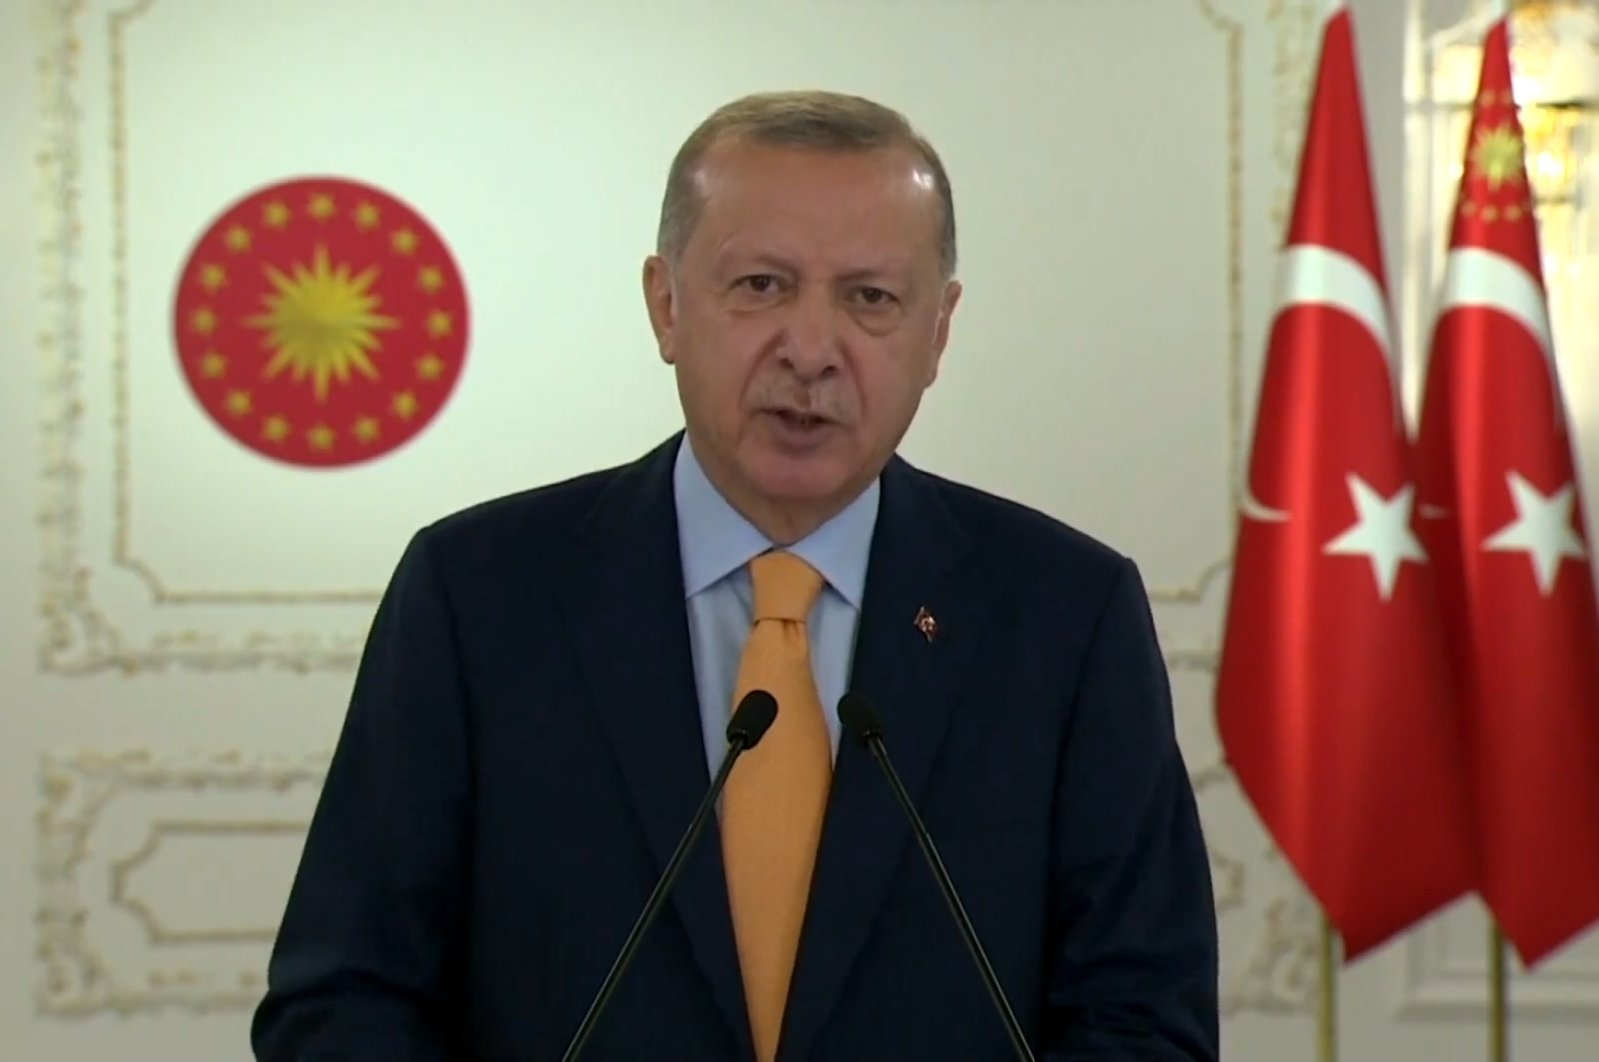 President Recep Tayyip Erdoğan speaks via videoconference during the 75th General Assembly of the United Nations, Sept. 22, 2020. (Screengrab from the U.N. video stream)